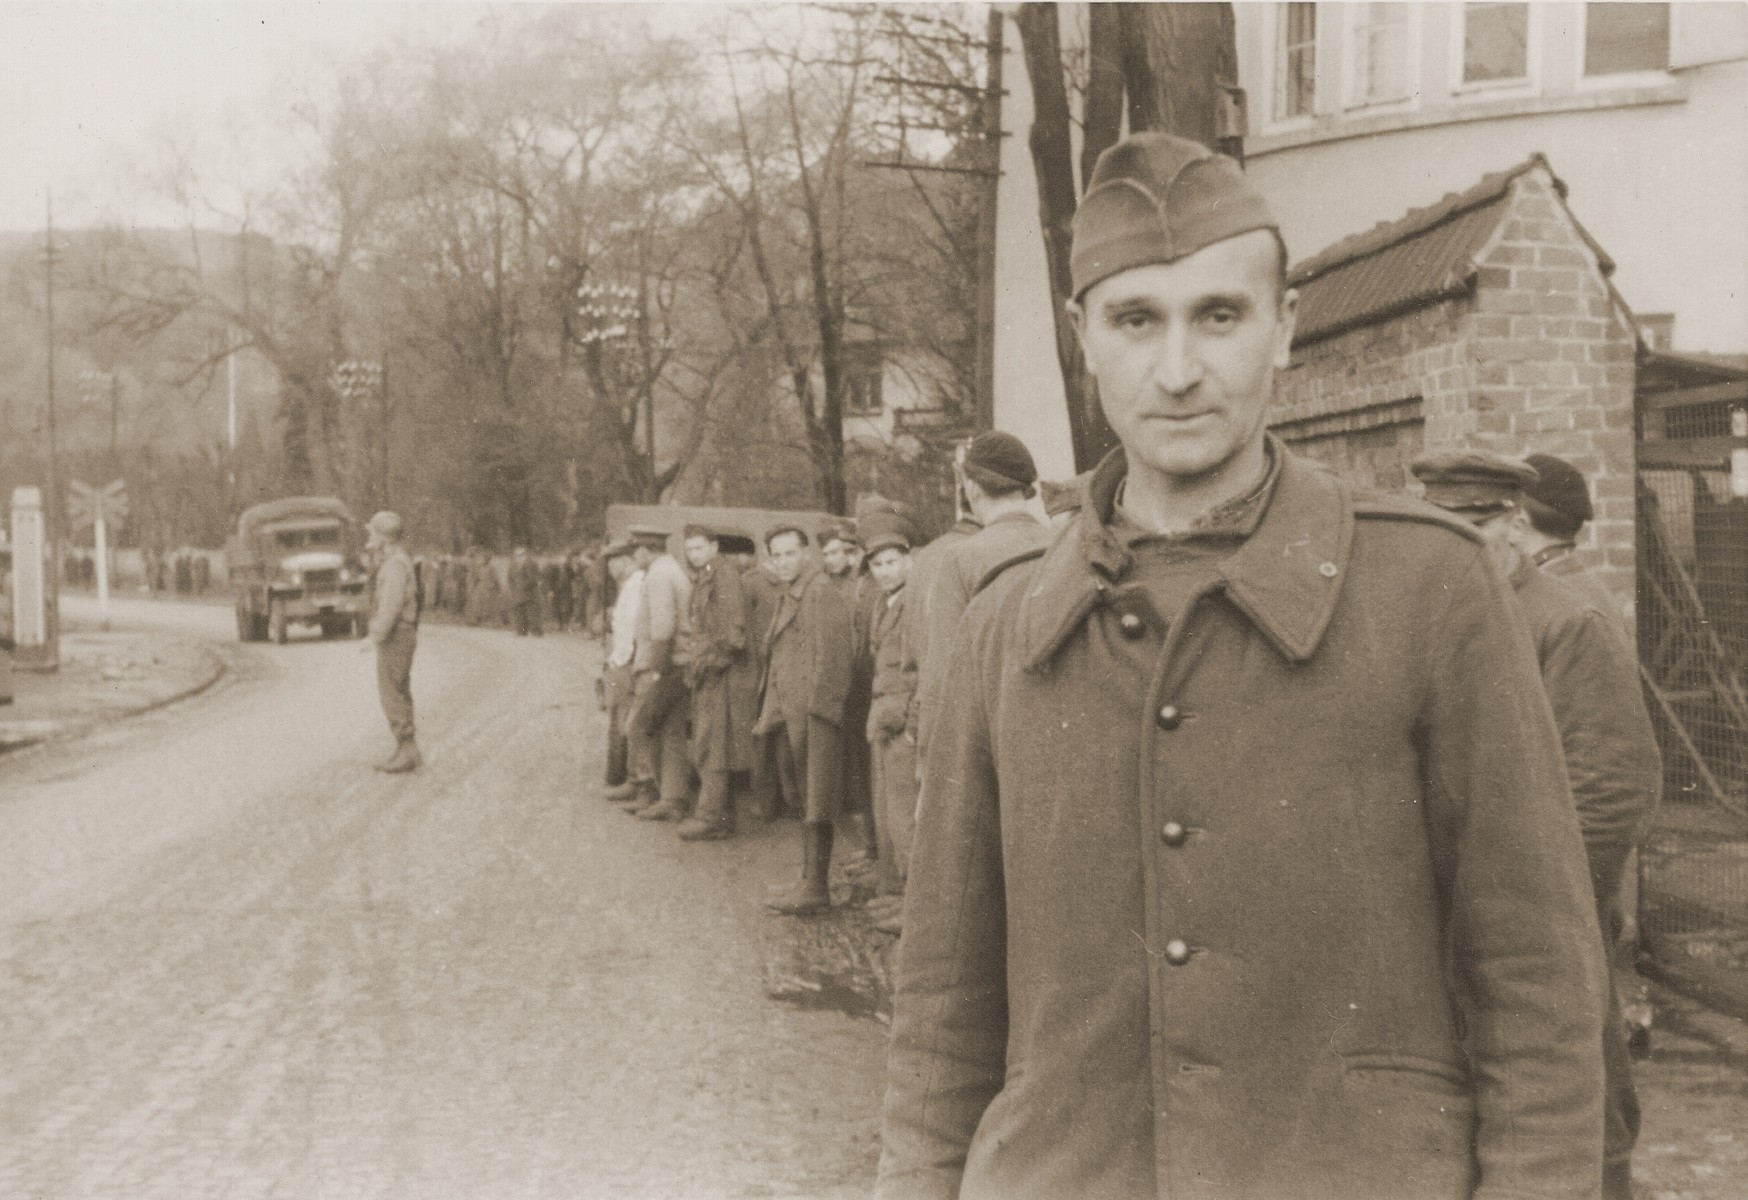 Displaced persons in Dillenburg after the liberation of the area by U.S. troops.